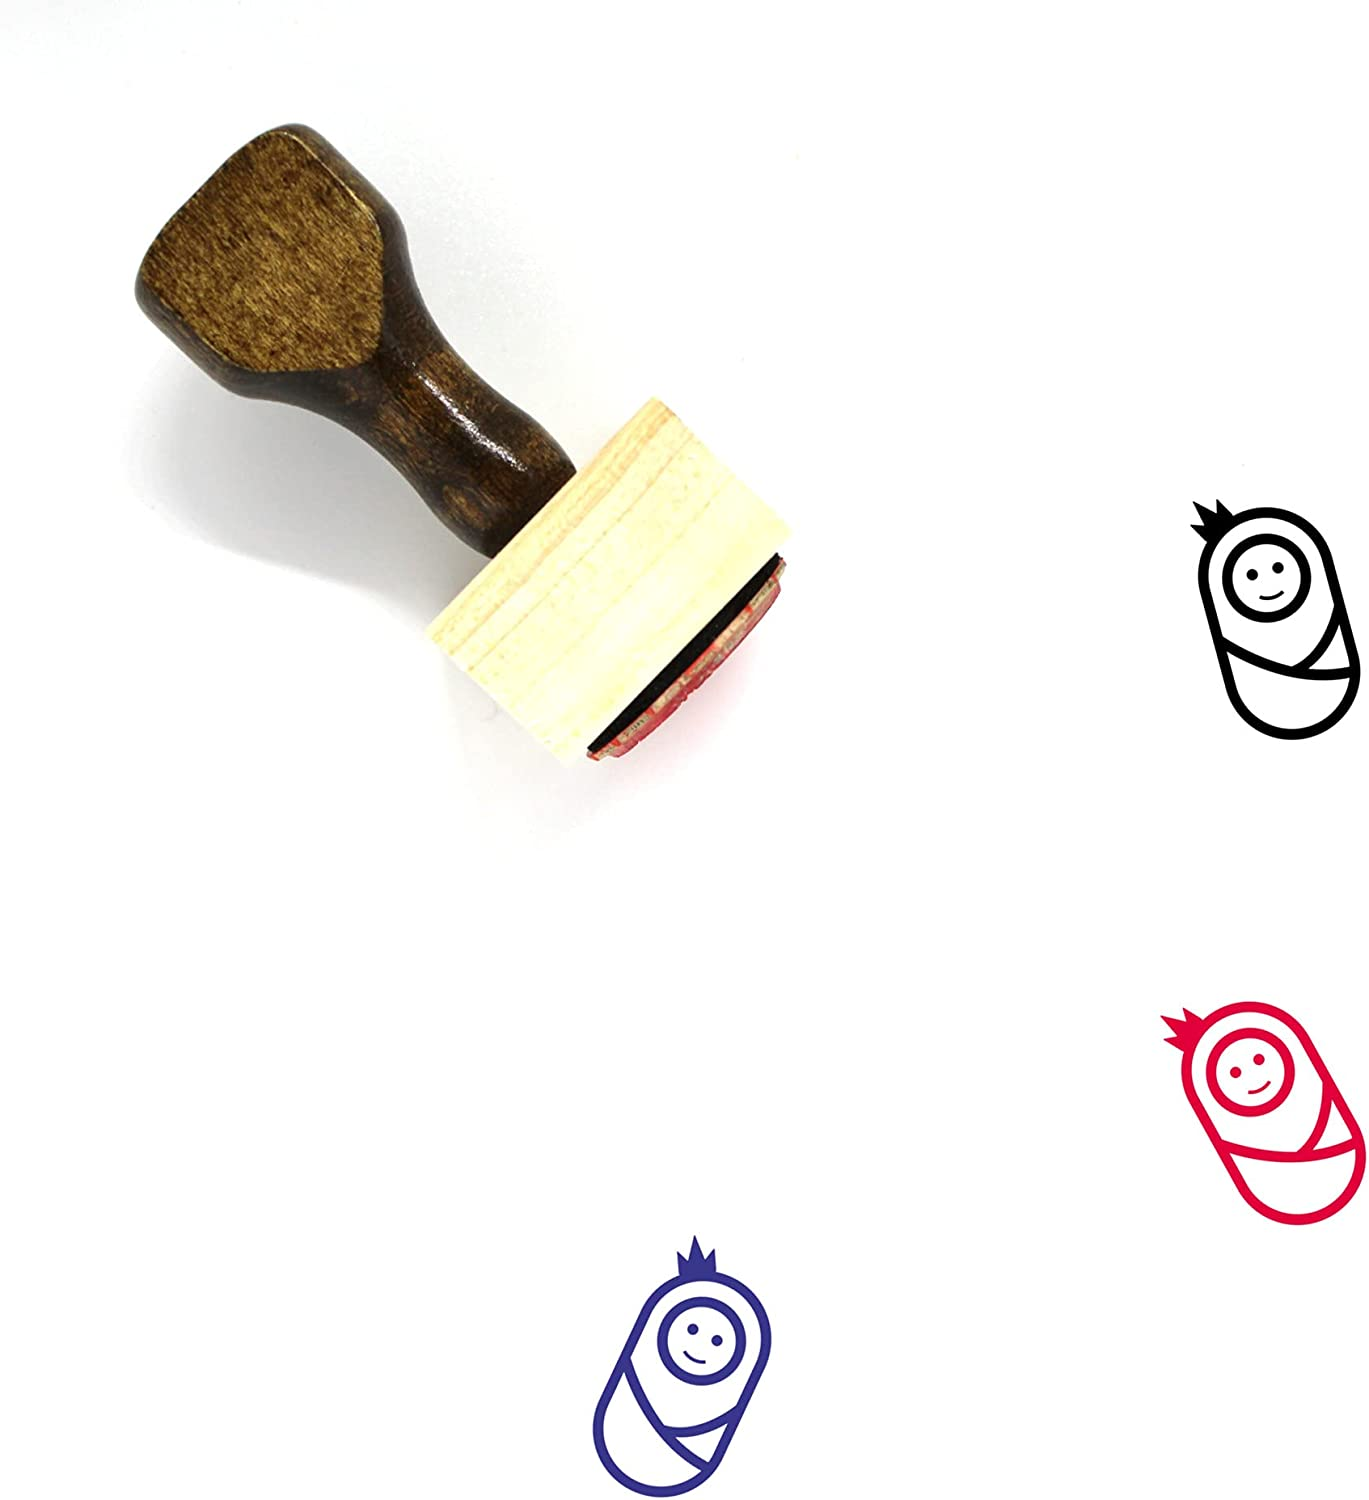 Royal Baby Wooden Rubber Stamp Sale item No. Easy-to-use x 3